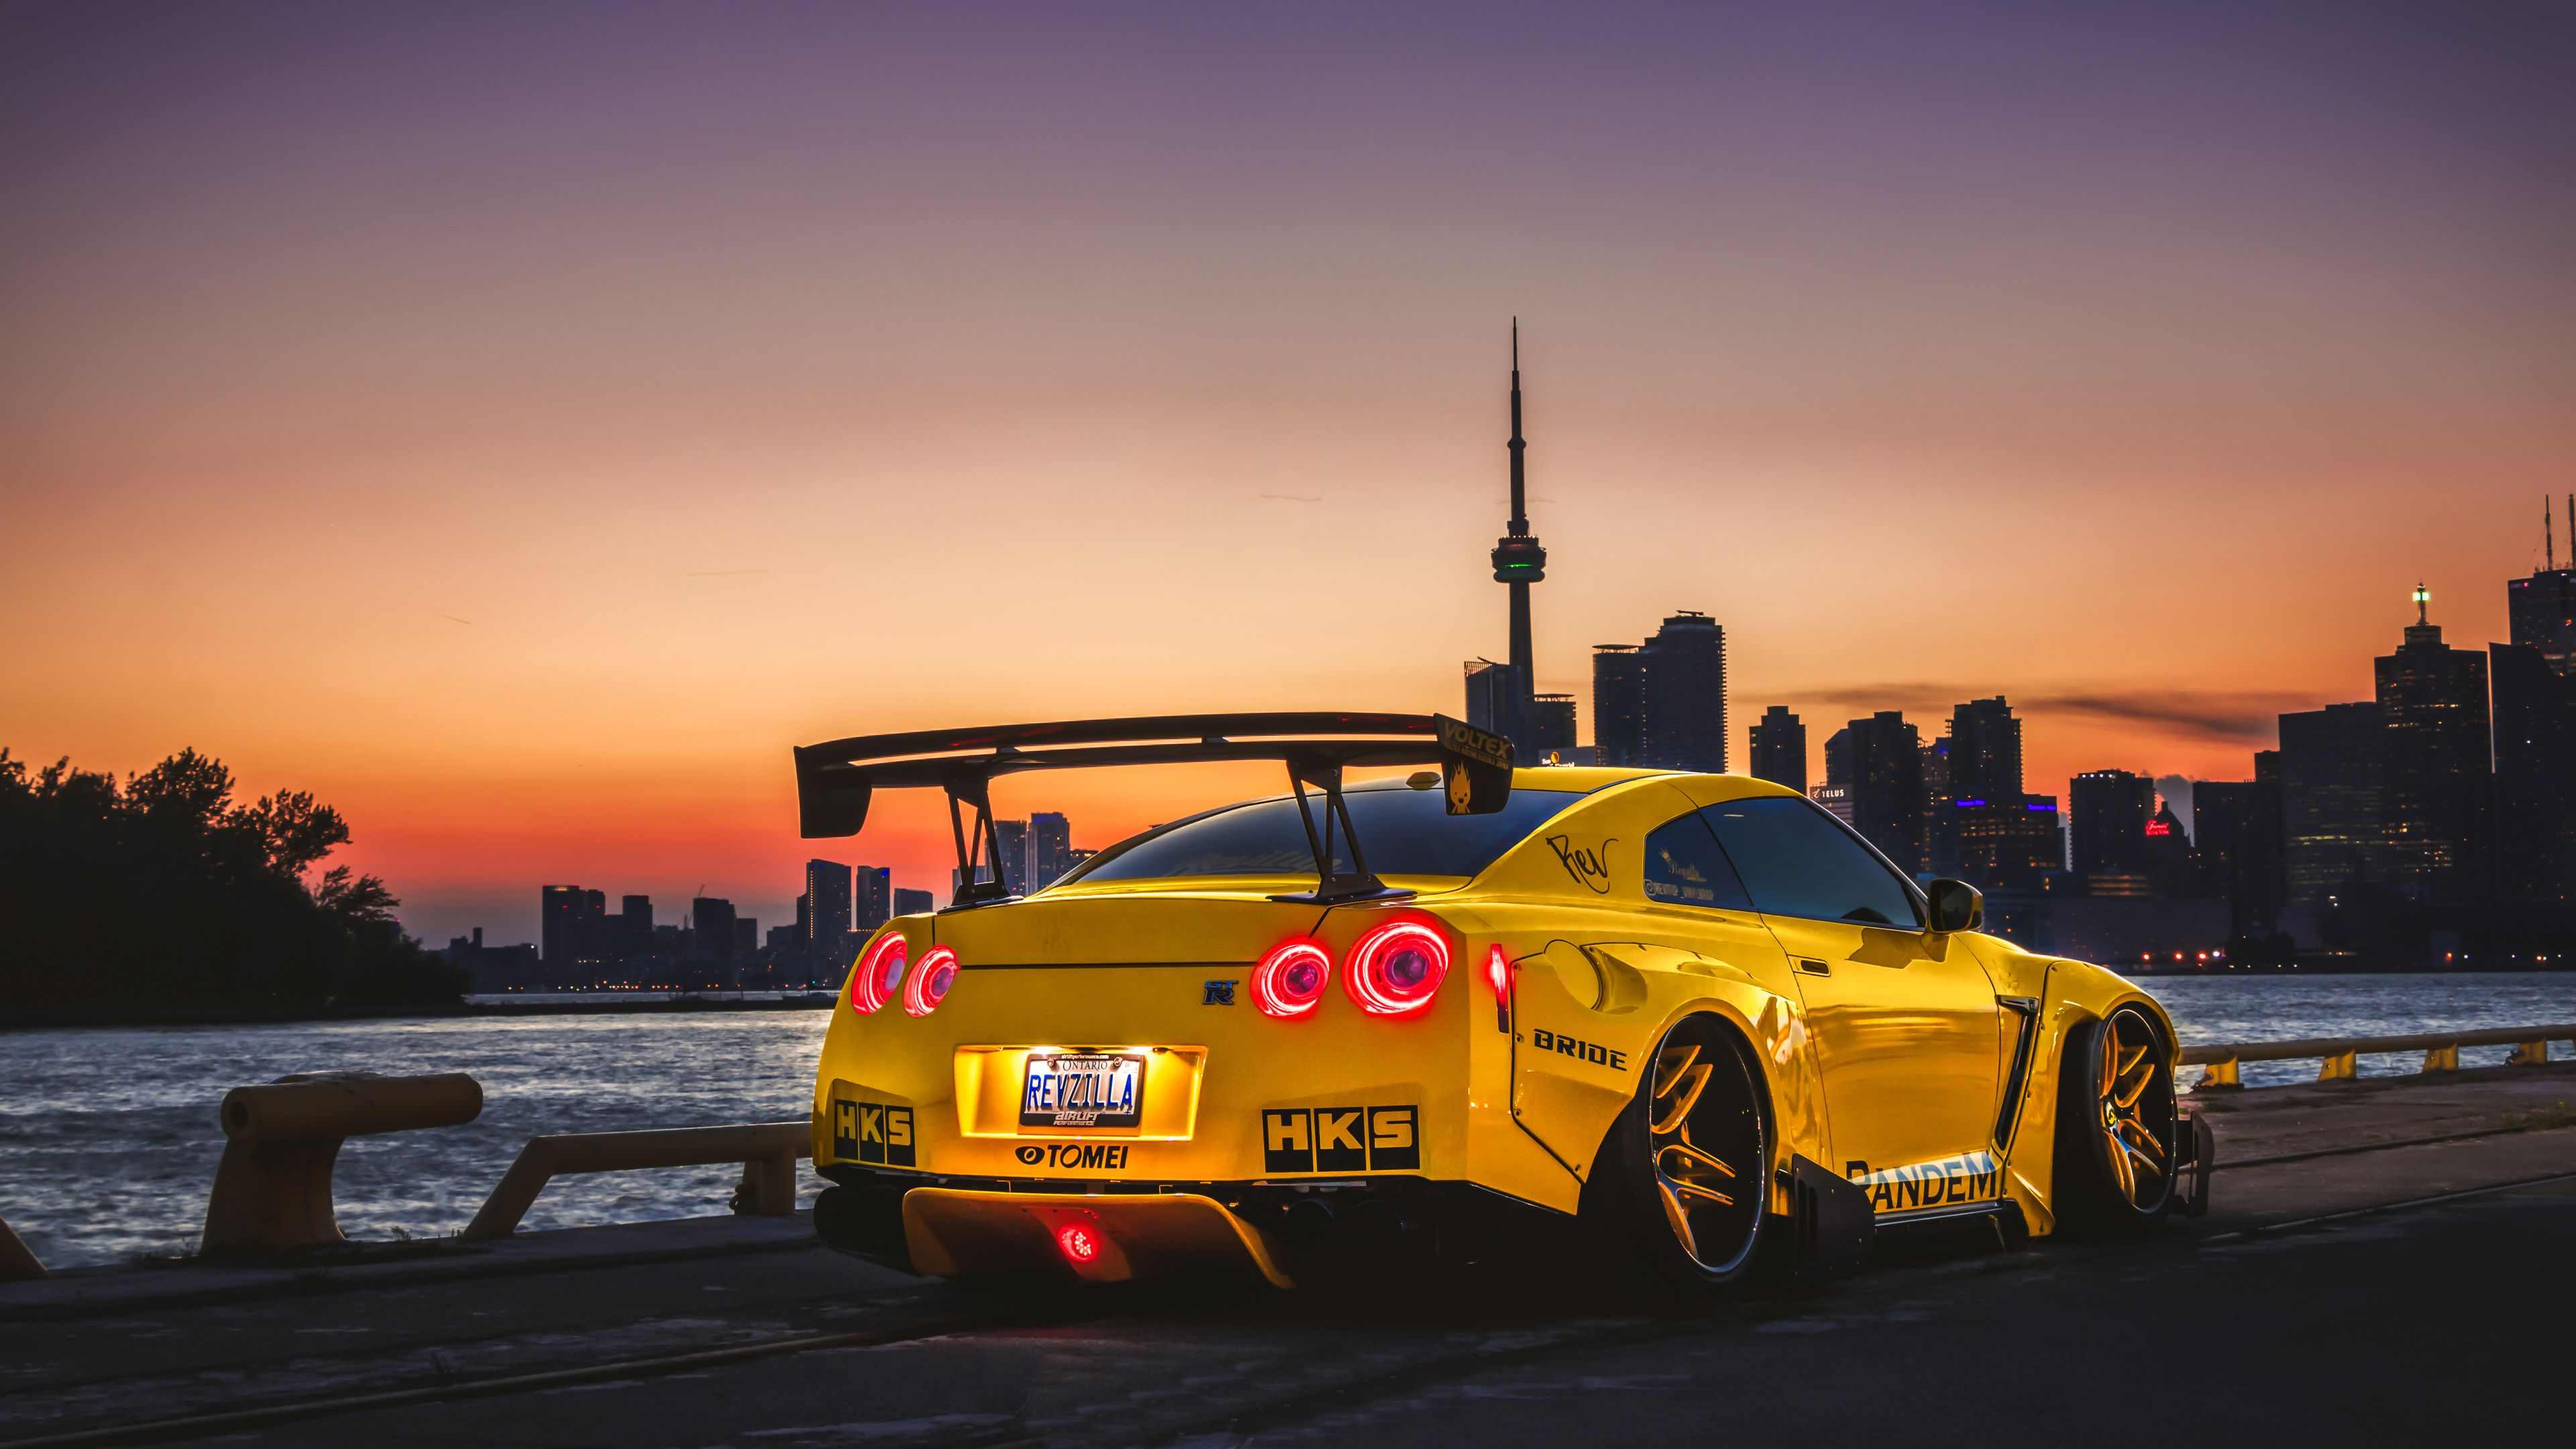 Wallpaper 4k Nissan Gtr Canada 4k 4k Wallpapers 5k Wallpapers Cars Wallpapers Hd Wallpapers Nissan Gtr Wallpapers Nissan Wallpapers Nissan Gt R Nissan Instagram